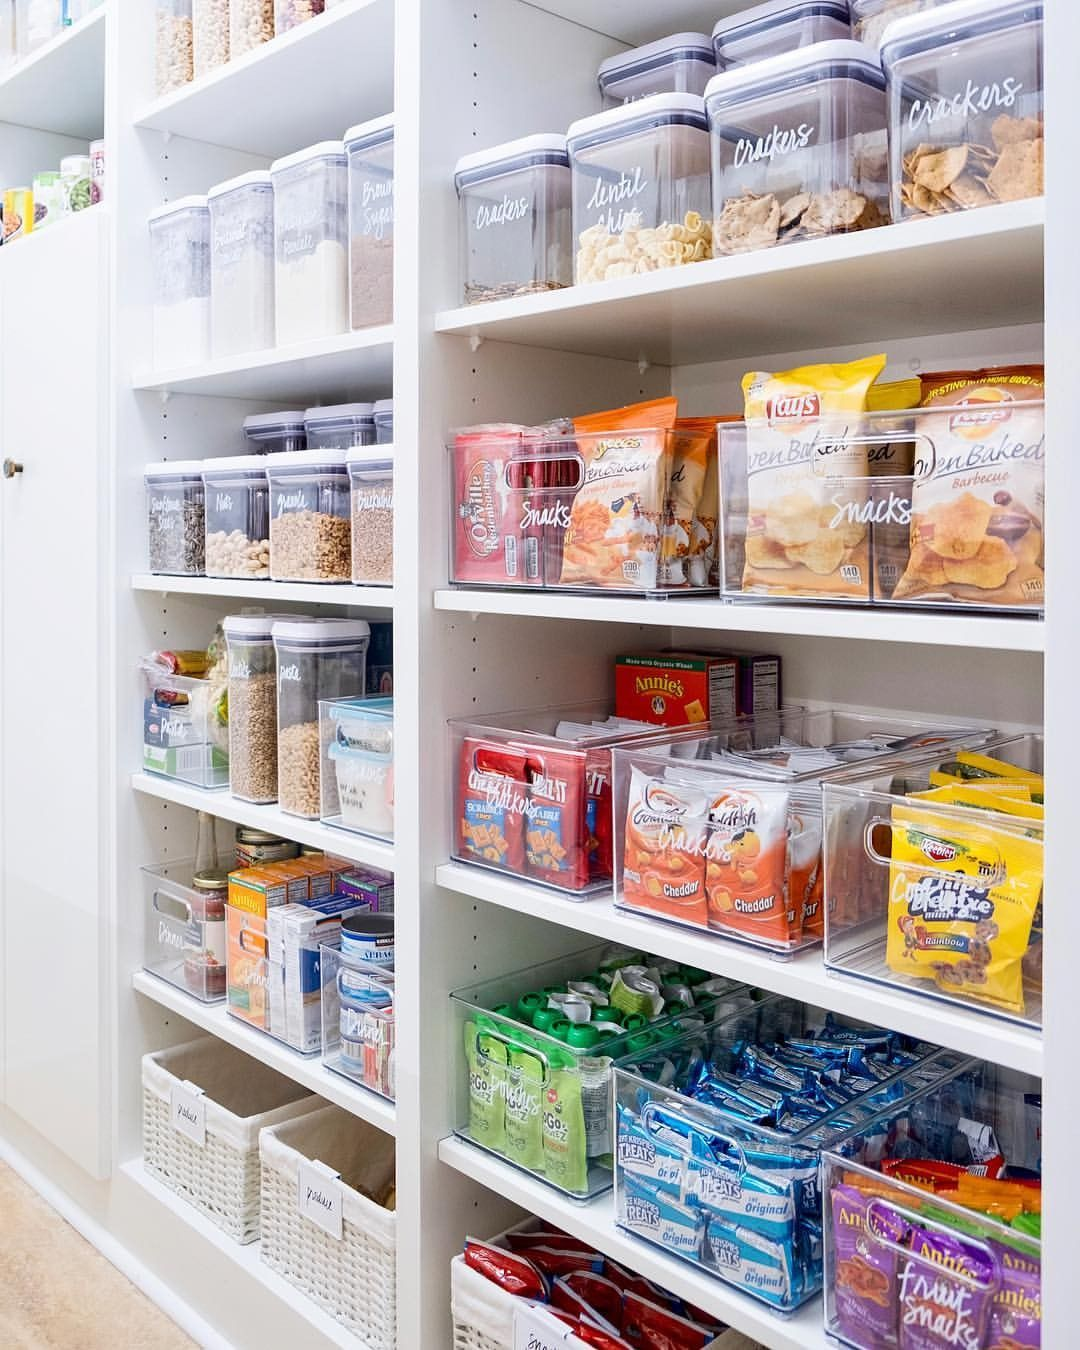 15 Kitchen Pantry Ideas With Form And Function: Pin By Sorella Paper Design On Organization ♡